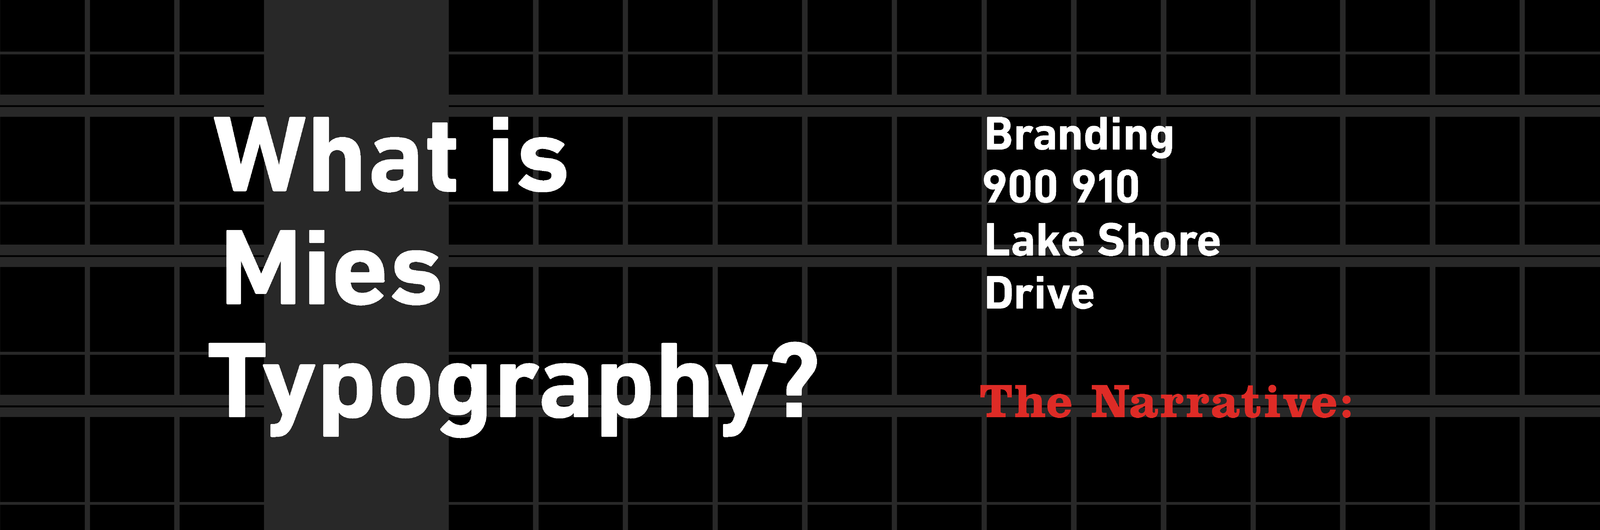 The Search for Mies Typography: Branding 900 910 Lake Shore Drive